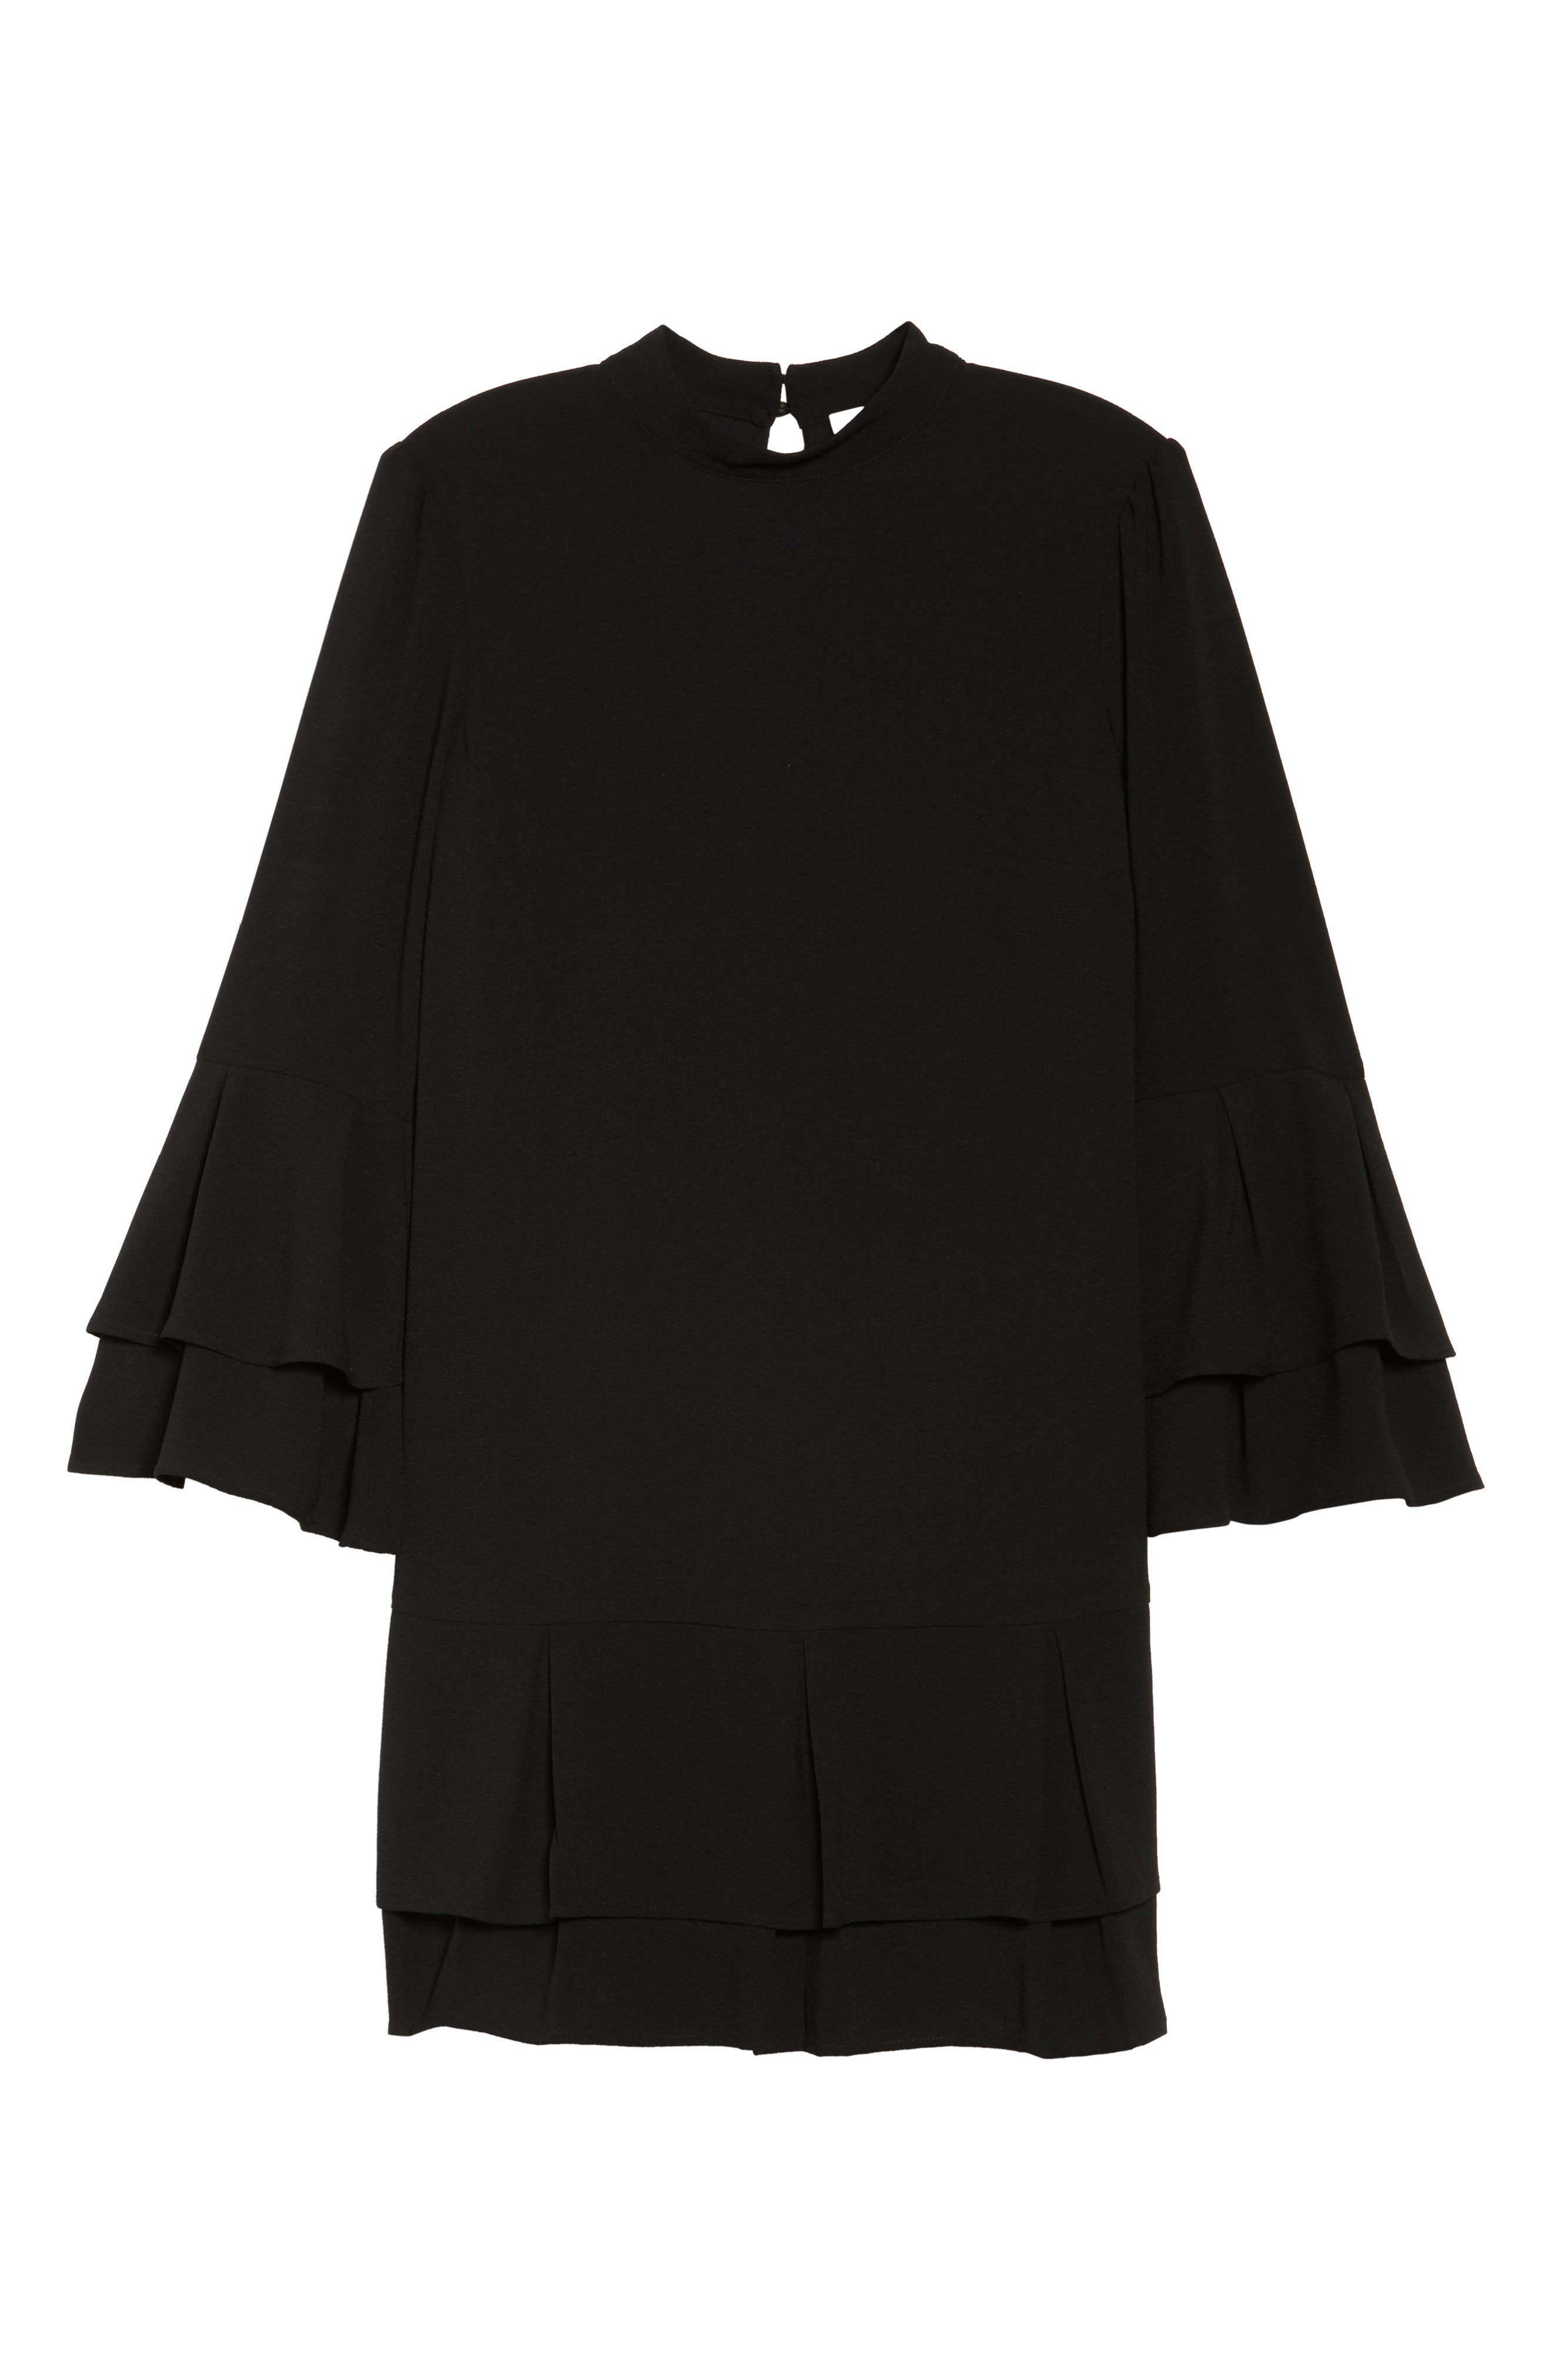 Tiered Sleeve Shift Dress,                             Alternate thumbnail 6, color,                             Black